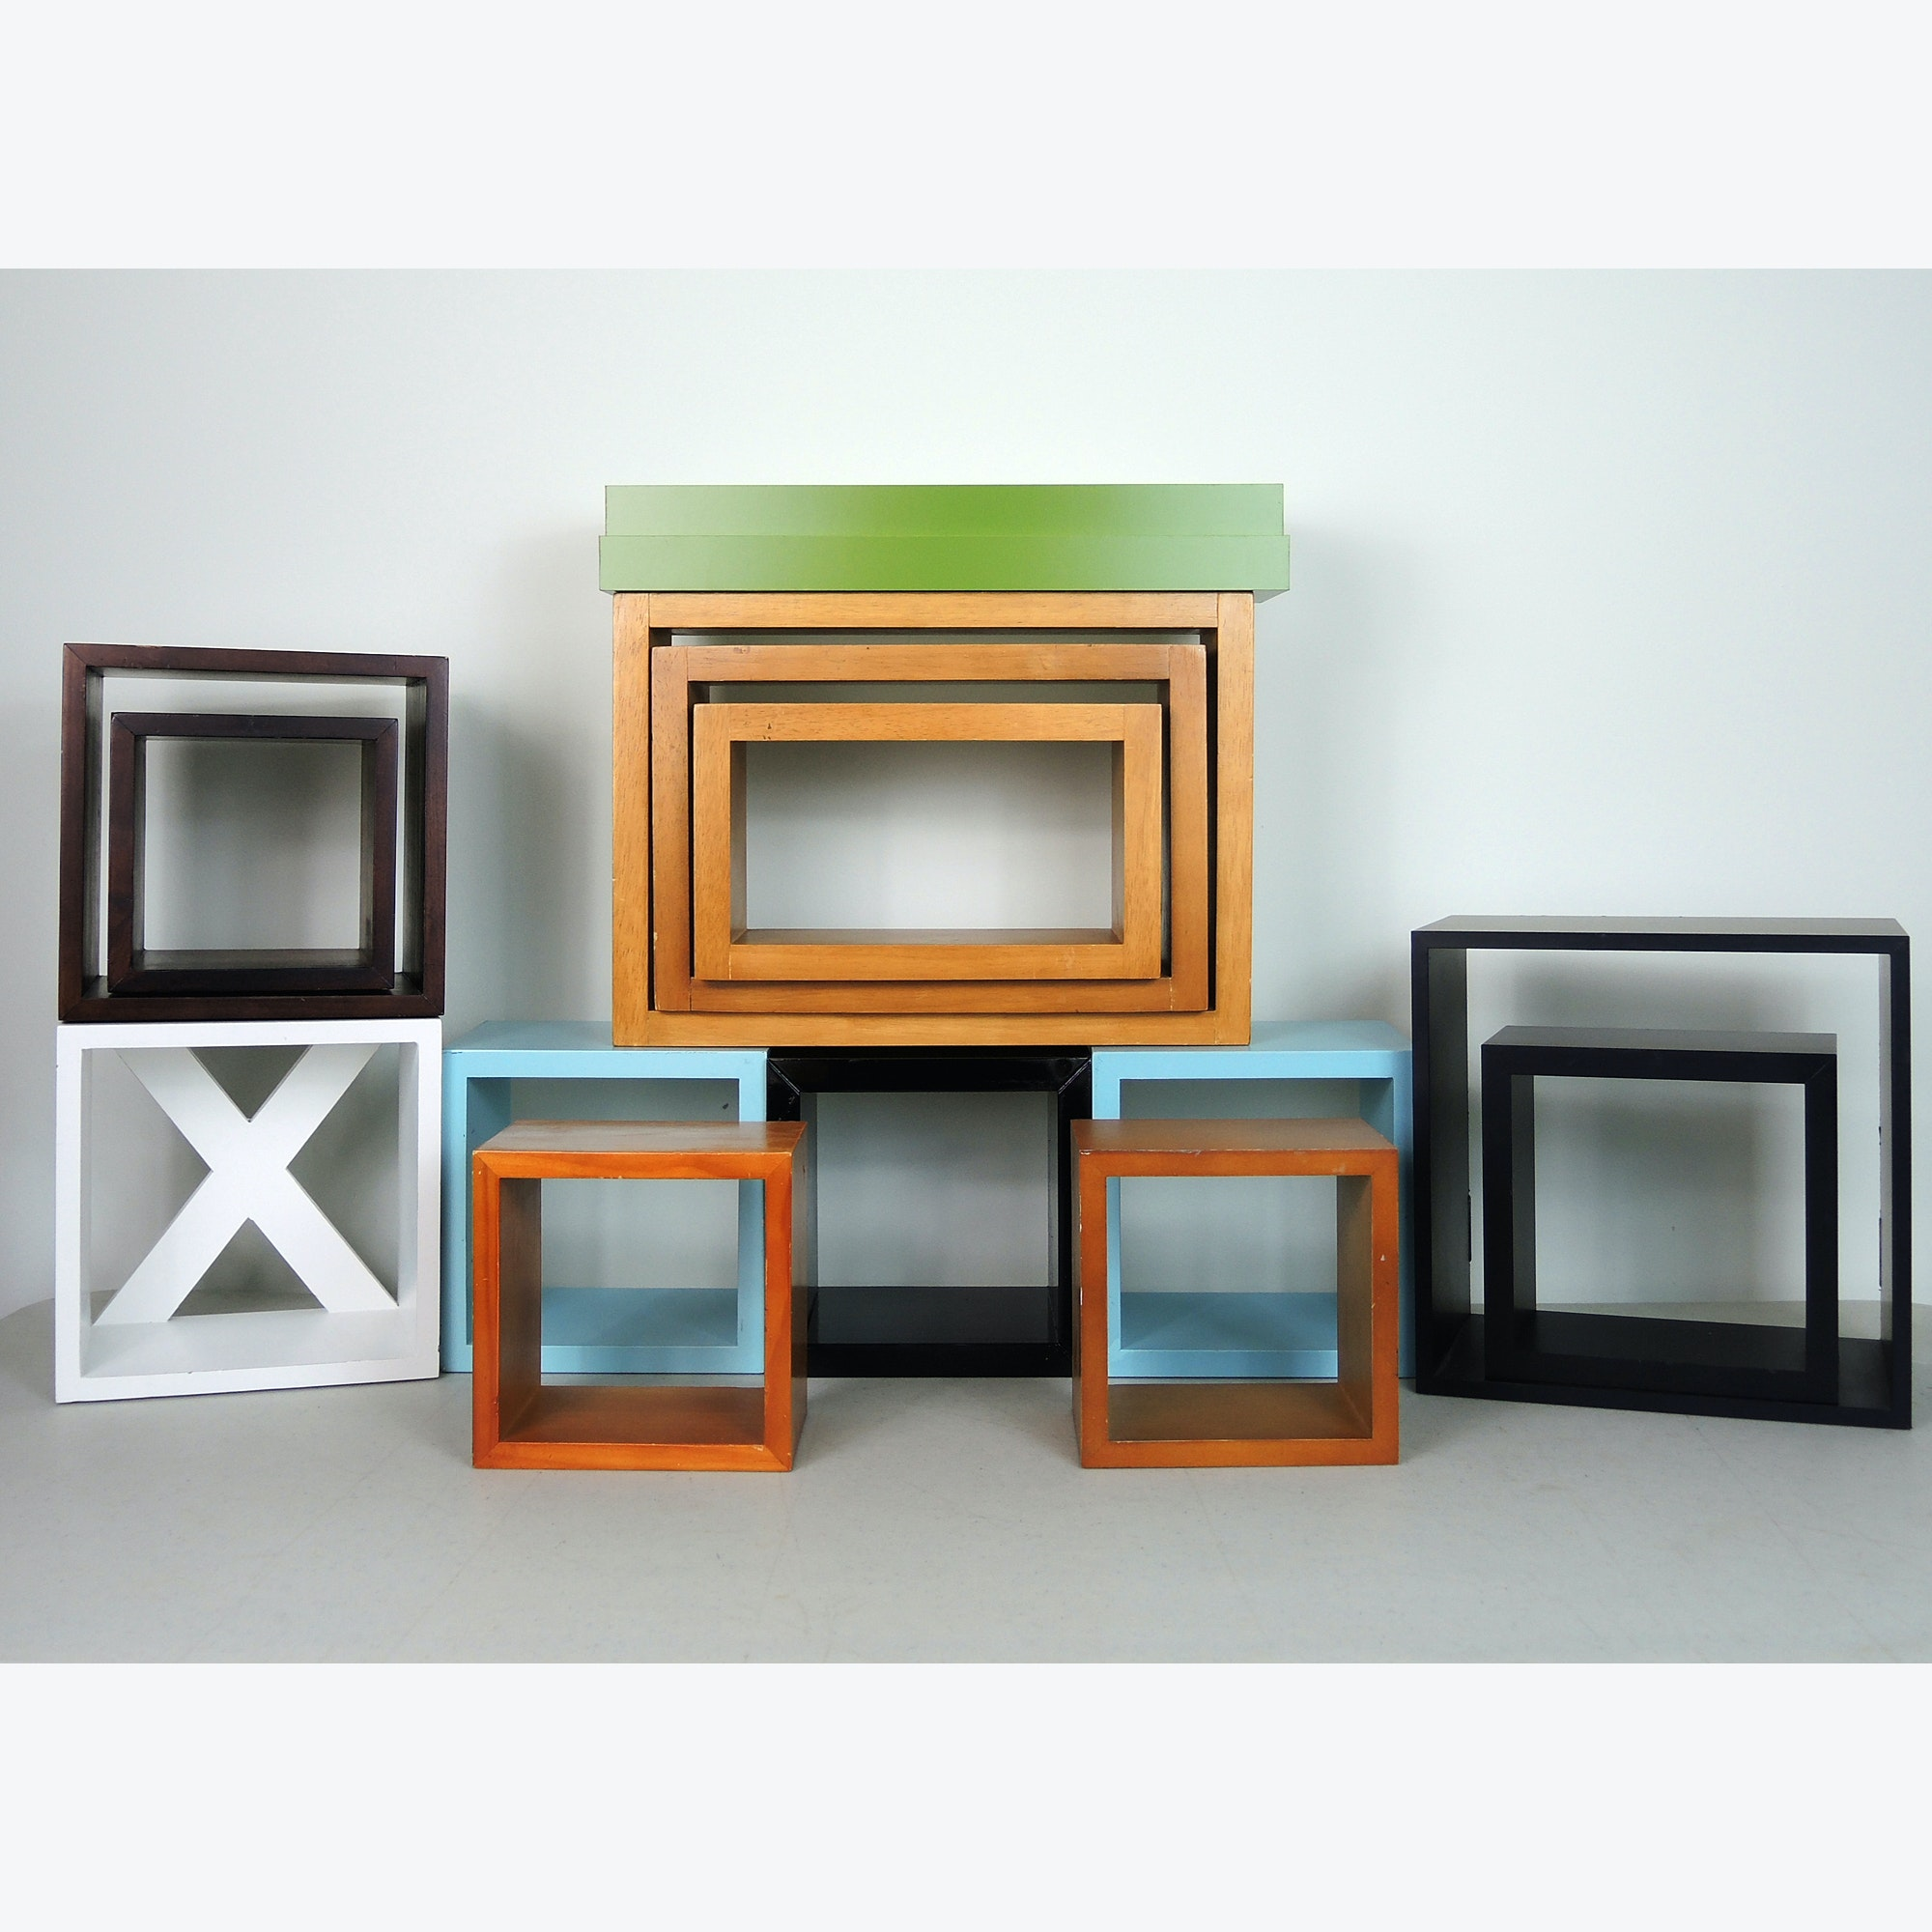 Collection of Wall Display Boxes and Shelves